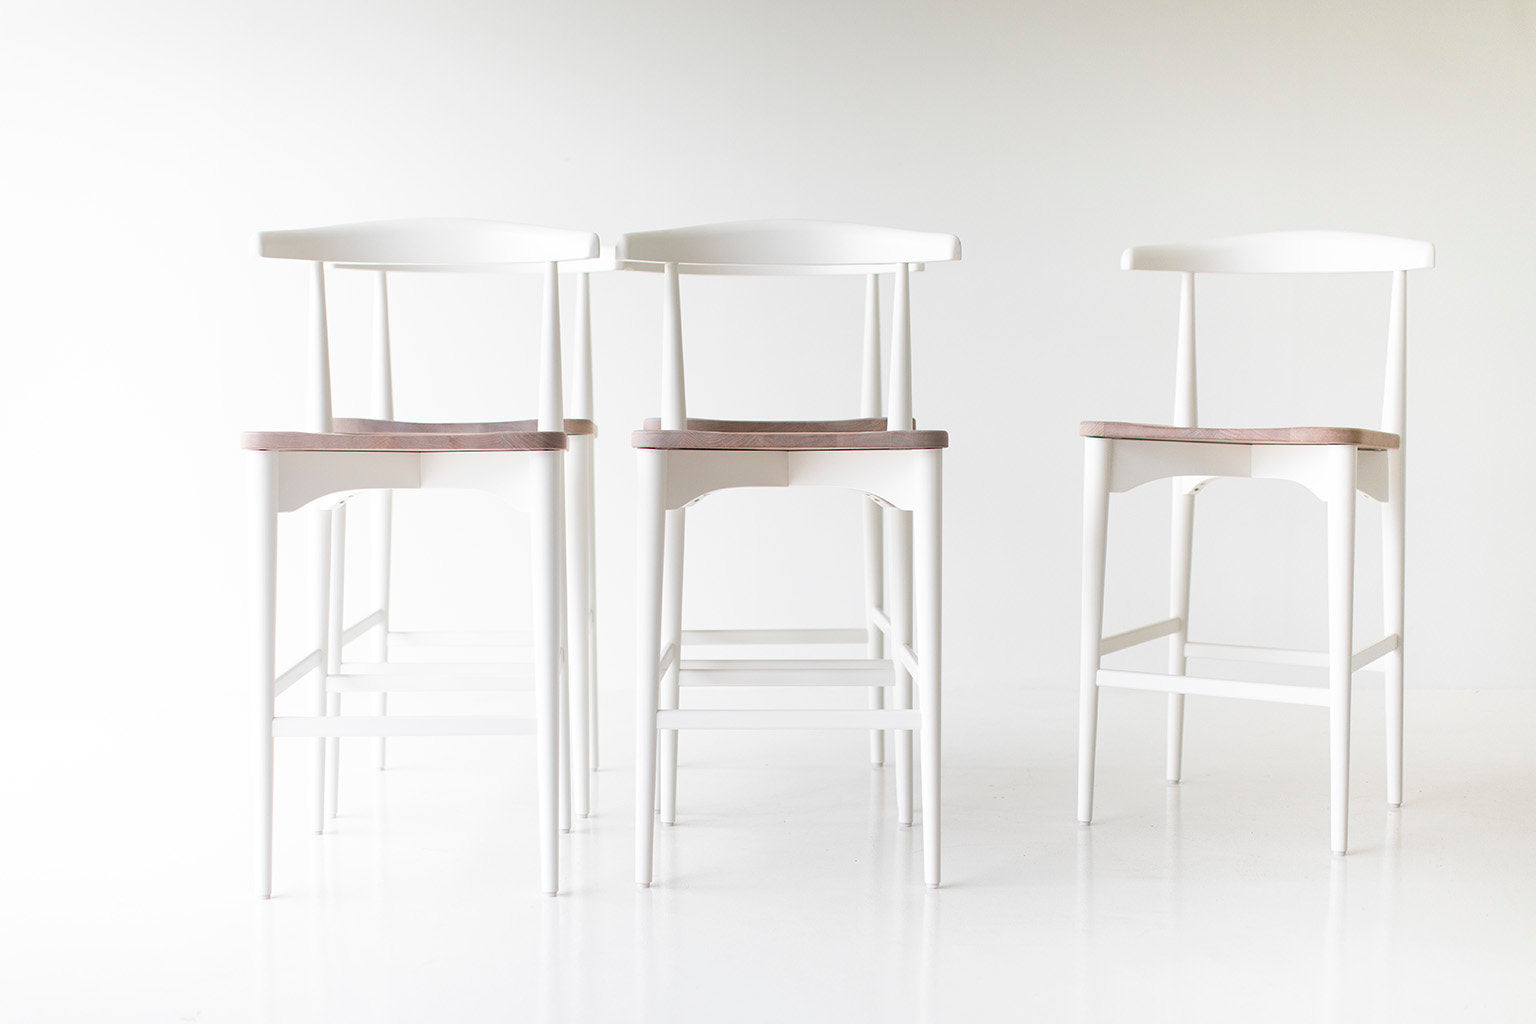 I07A7407-lawrence-peabody-white-bar-stools-04